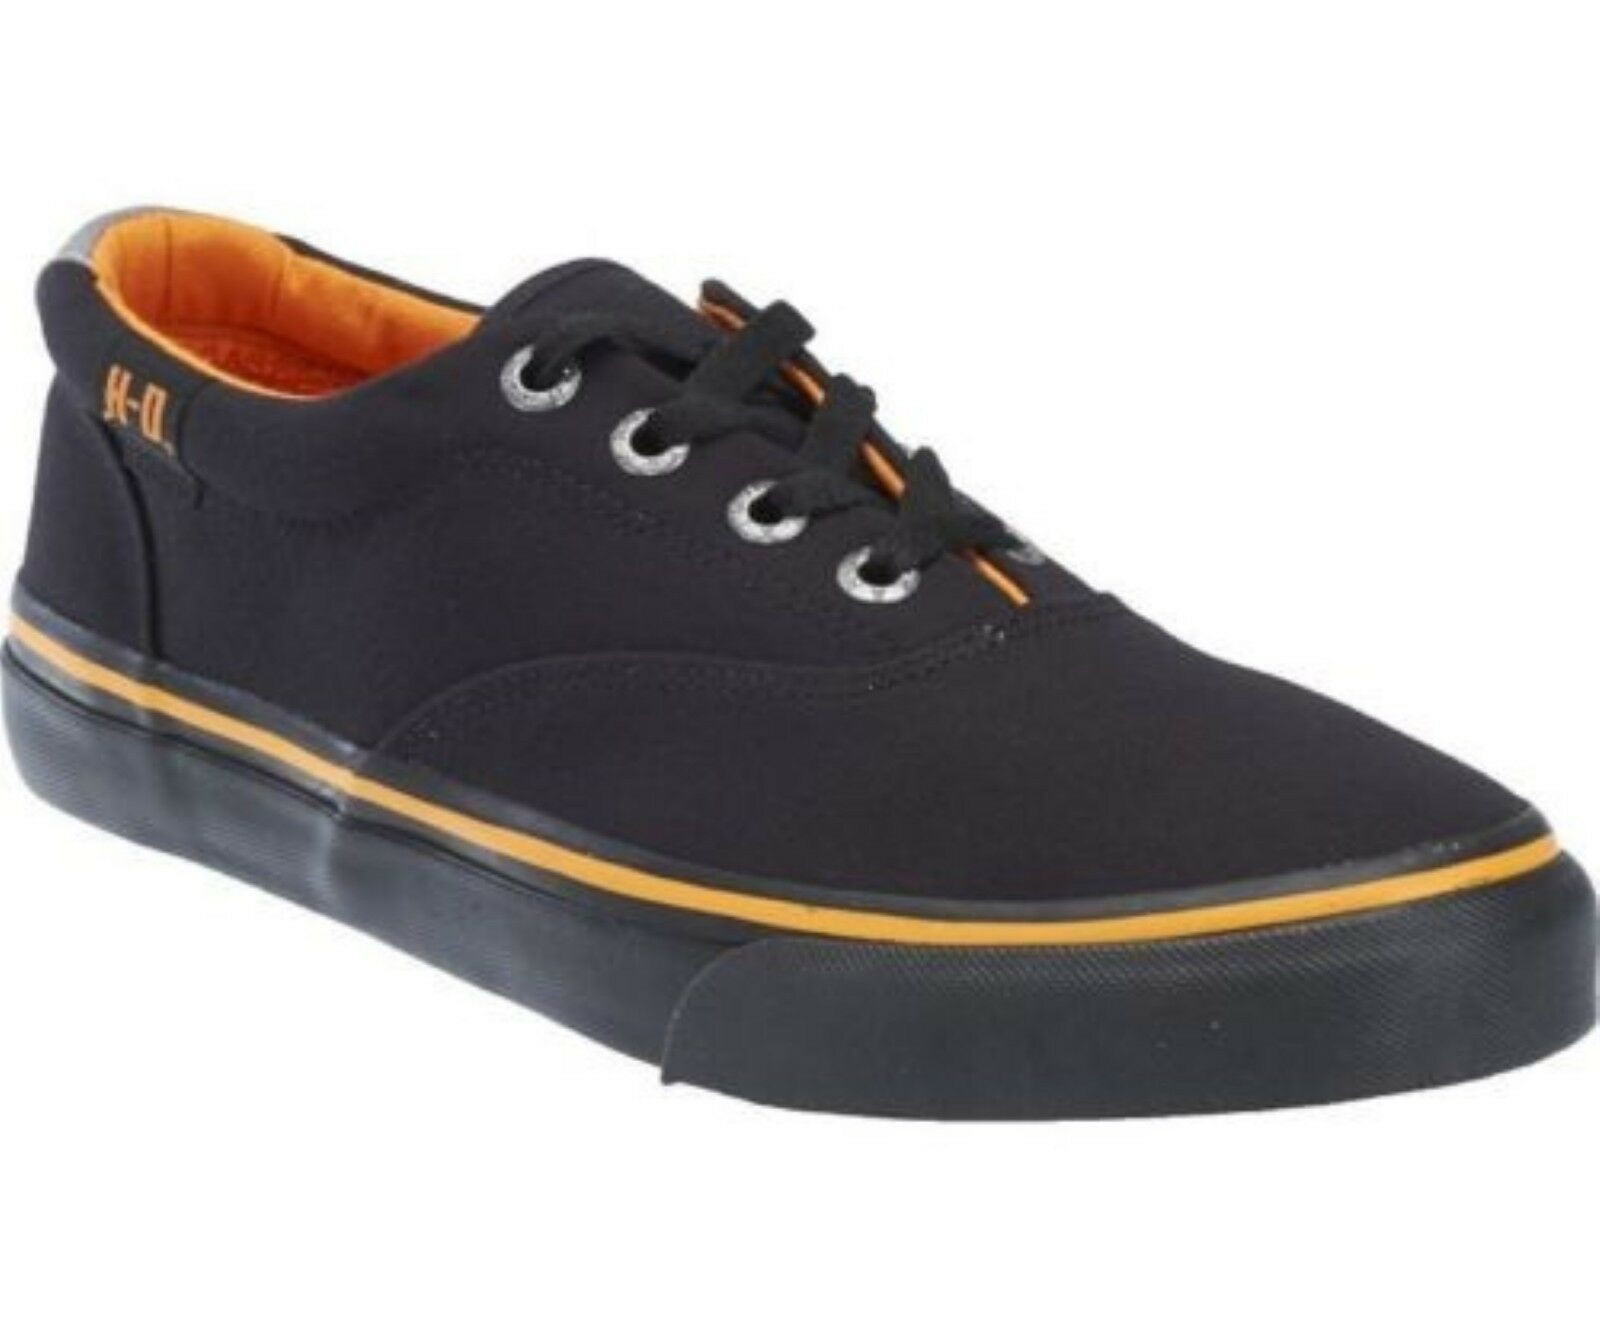 Harley Davidson Genuine Lawthorn Black  Mens Biker Trainers Relax Lace Up Shoes